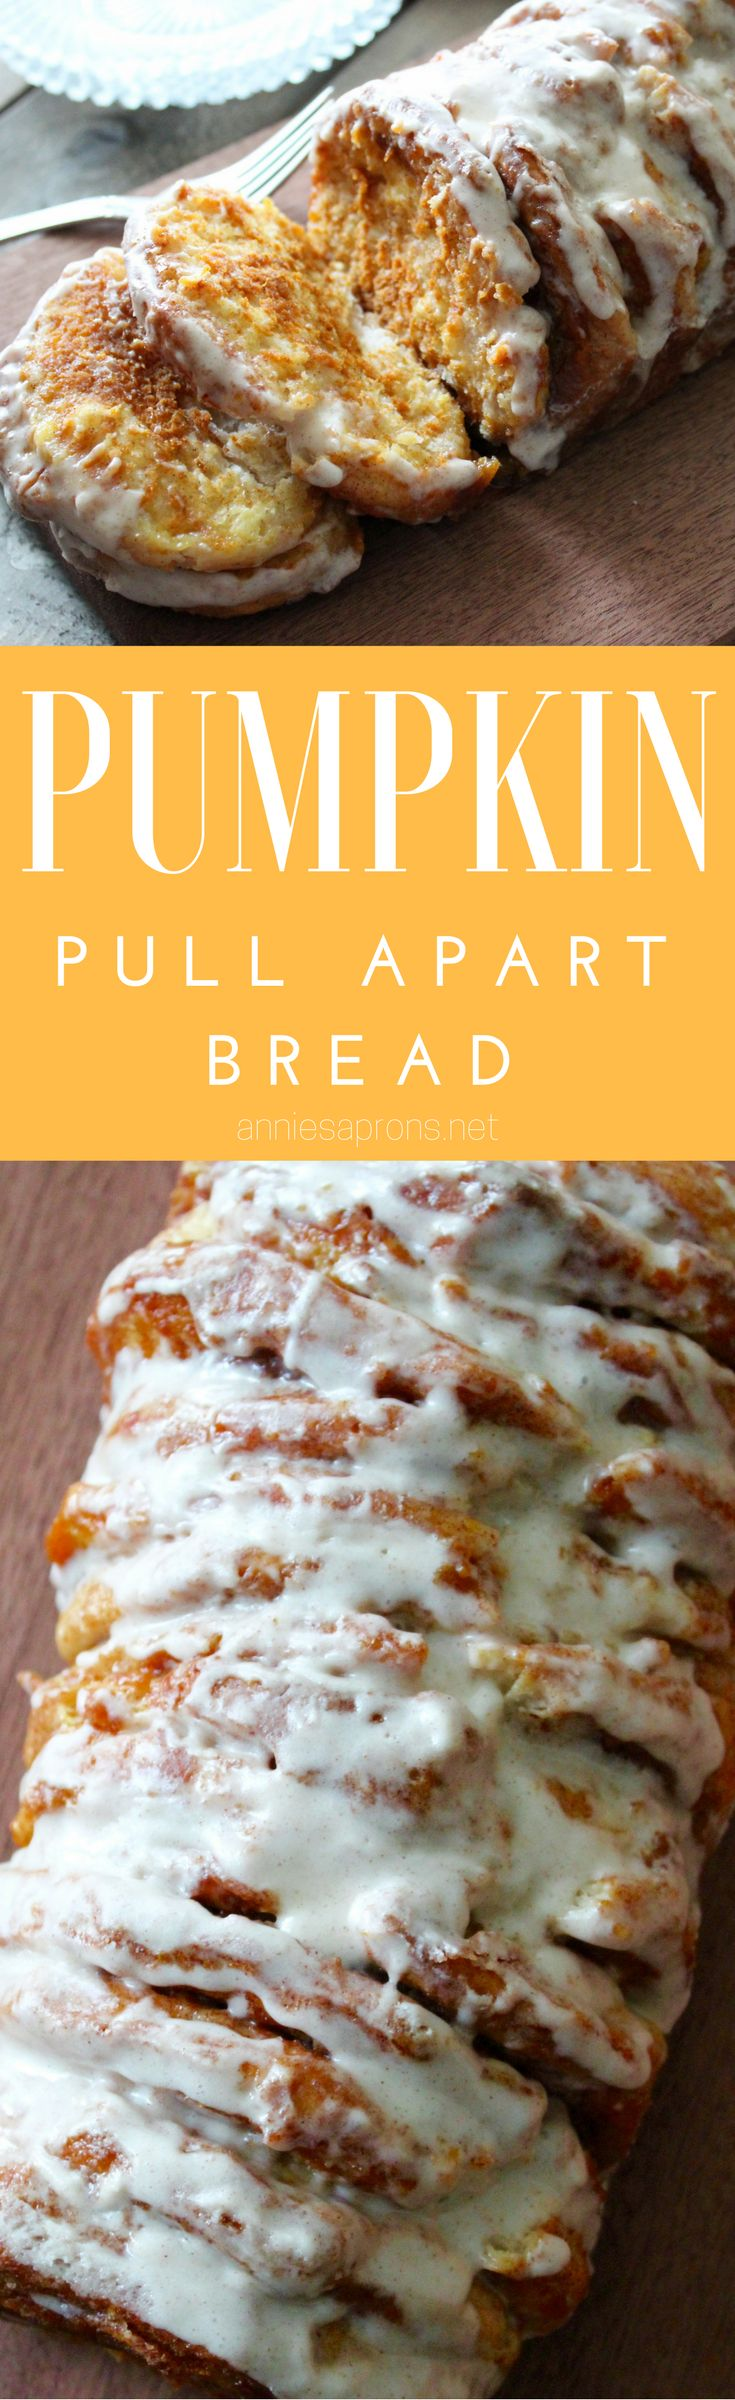 The BEST EVER Pumpkin Pull Apart bread. This recipe is super easy and uses canned biscuits, pumpkin pie mix and a sweet glaze. So good!